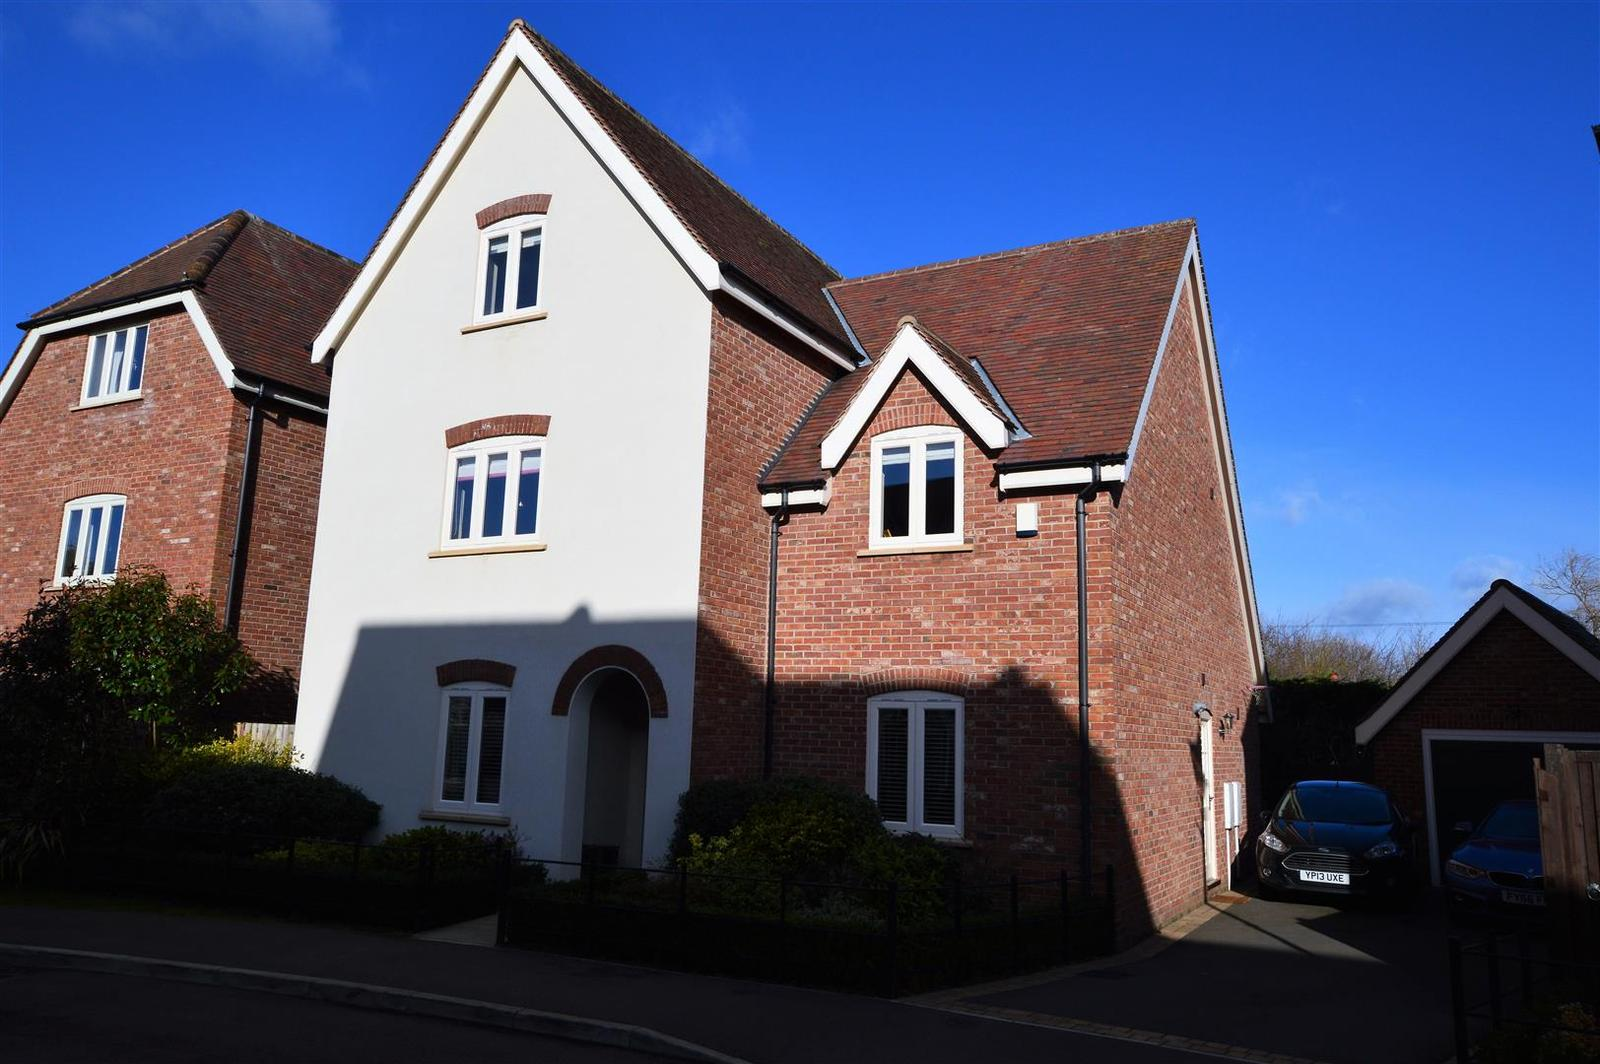 5 Bedrooms Property for sale in Chaveney Walk, Quorn, Loughborough